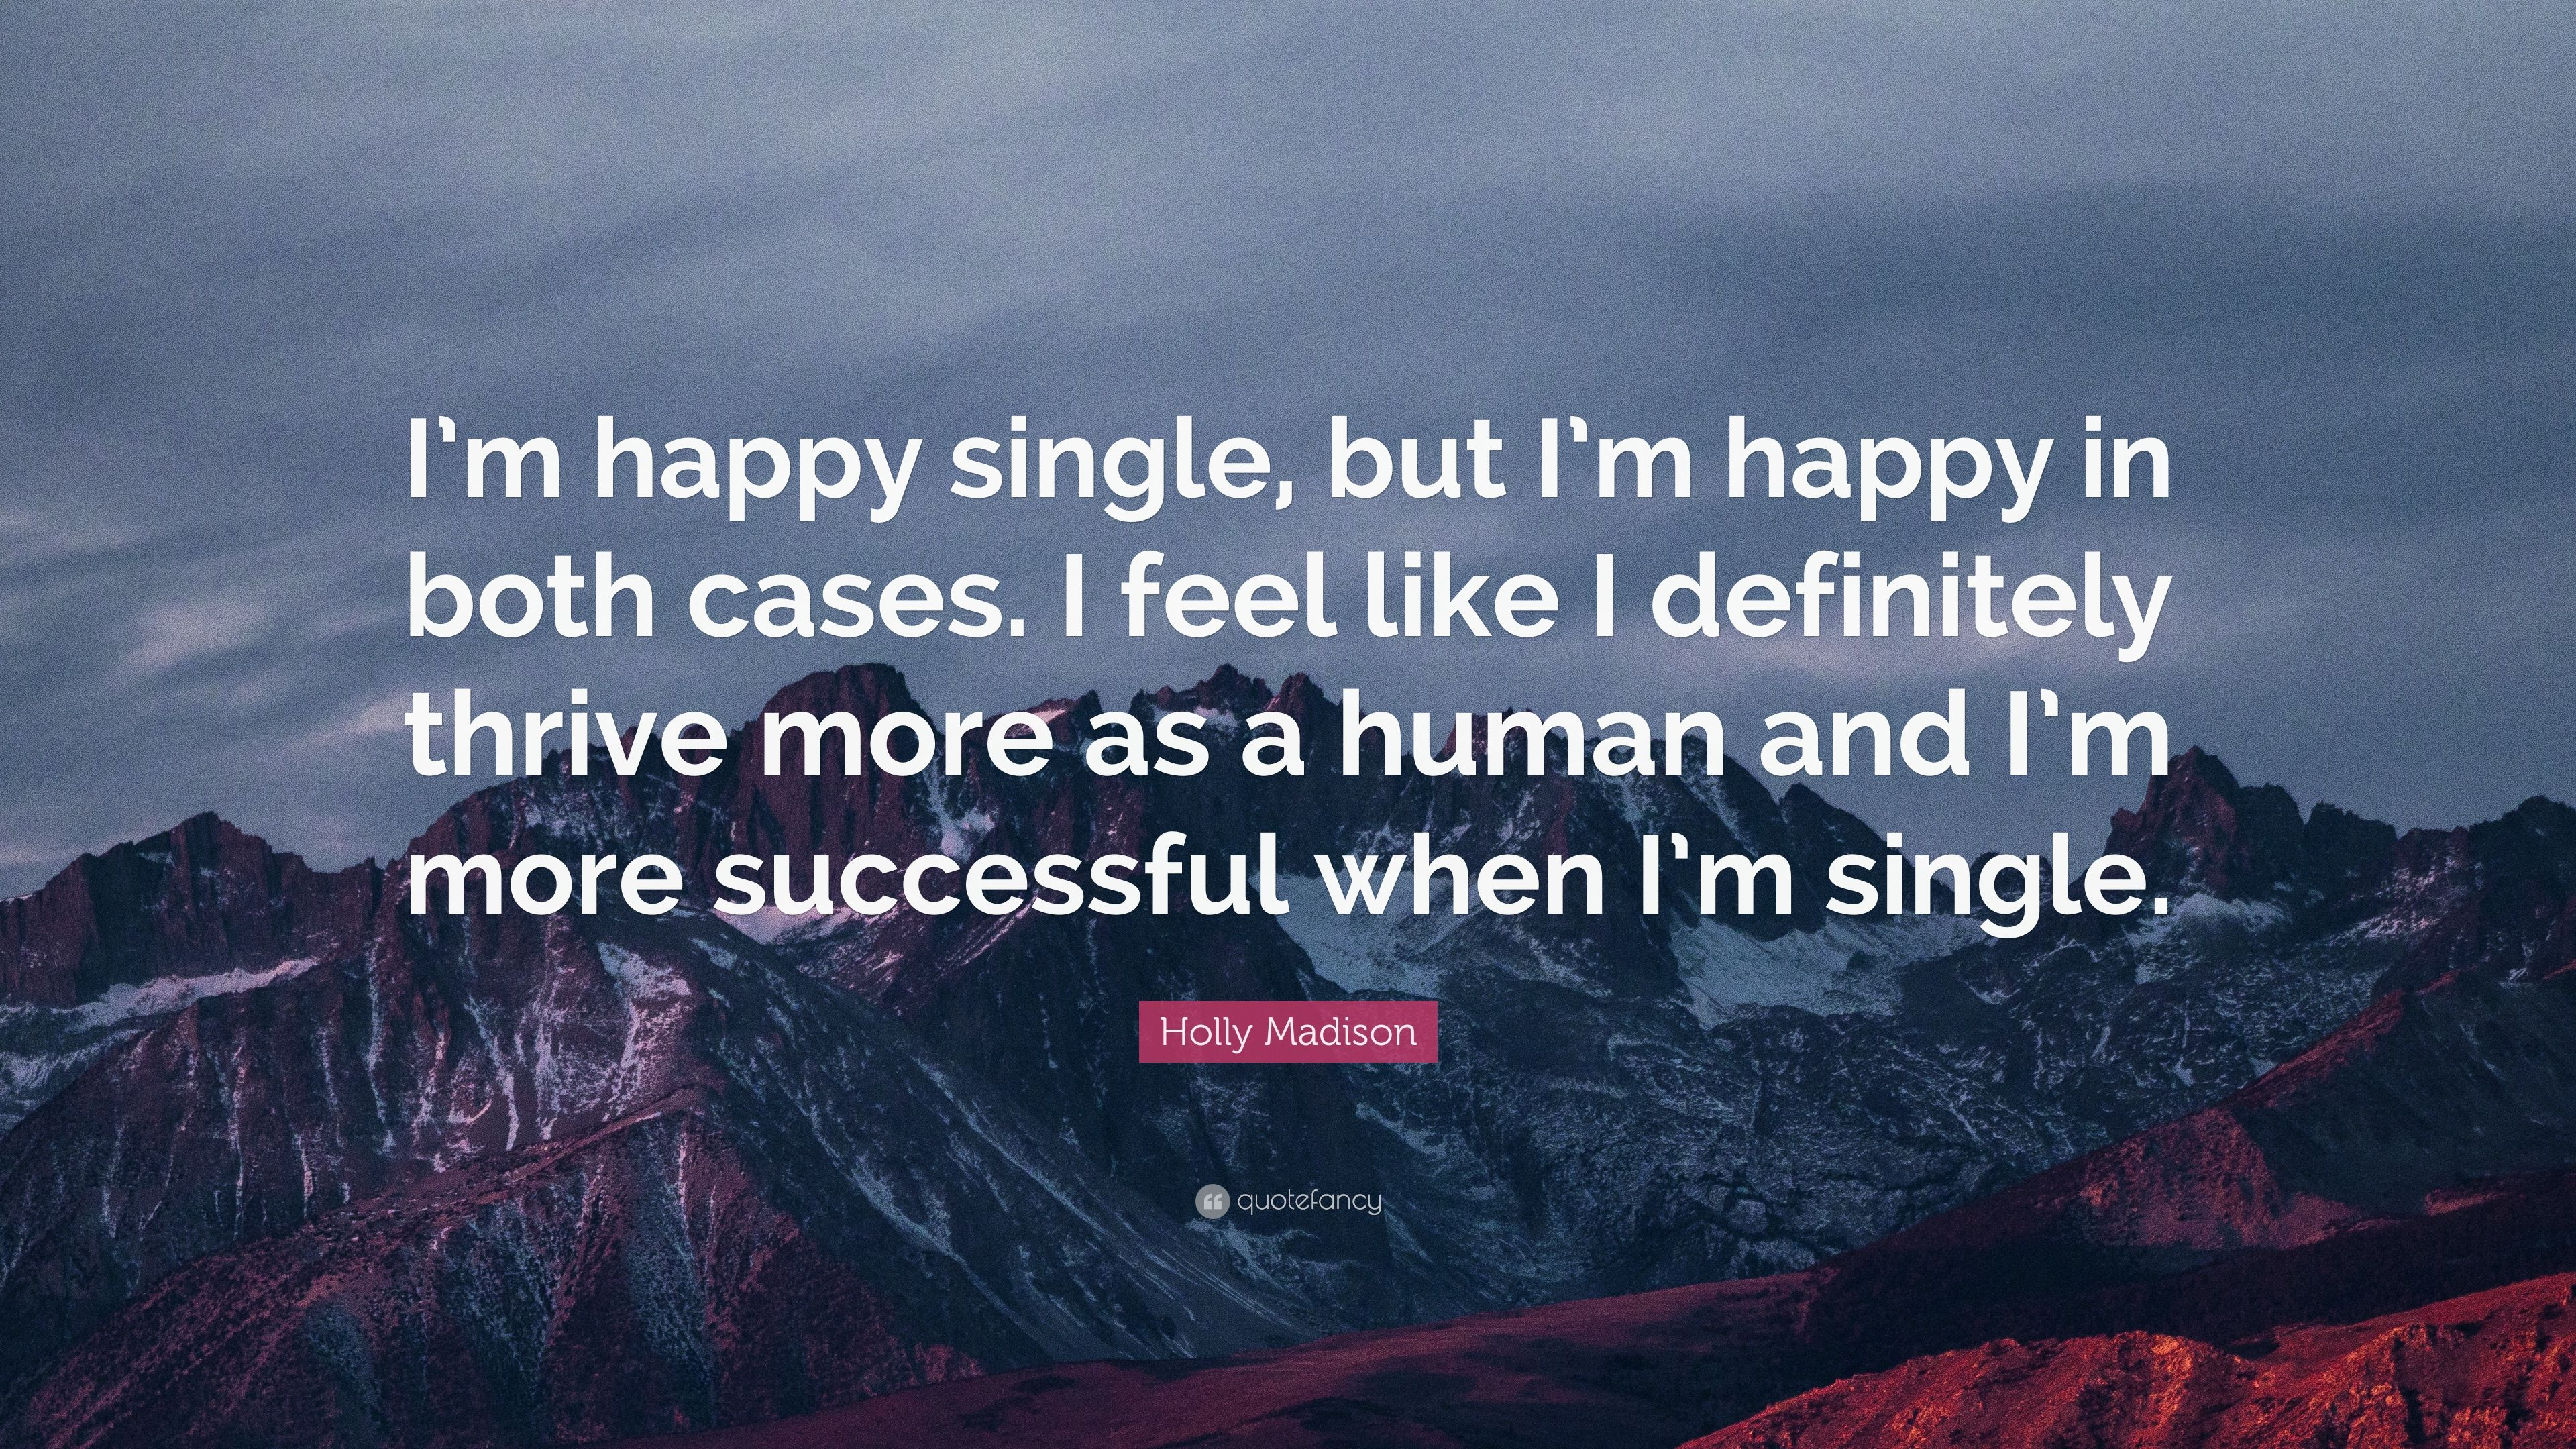 Image of: Alone Holly Madison Quote im Happy Single But Im Happy Az Quotes Holly Madison Quote im Happy Single But Im Happy In Both Cases